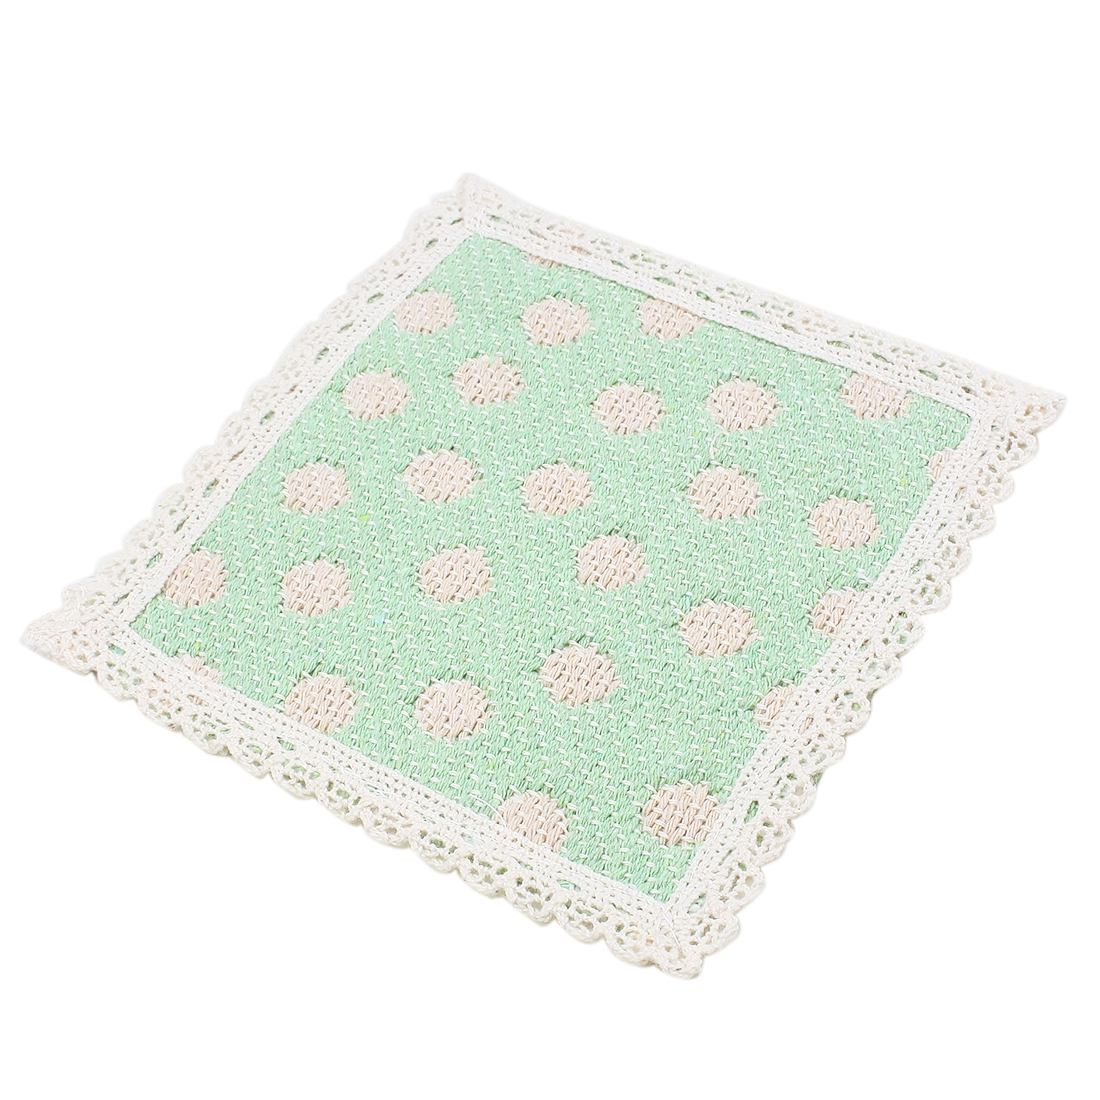 Cotton Strawberry Heat Resistant Table Cup Placemat Pad Coaster Green